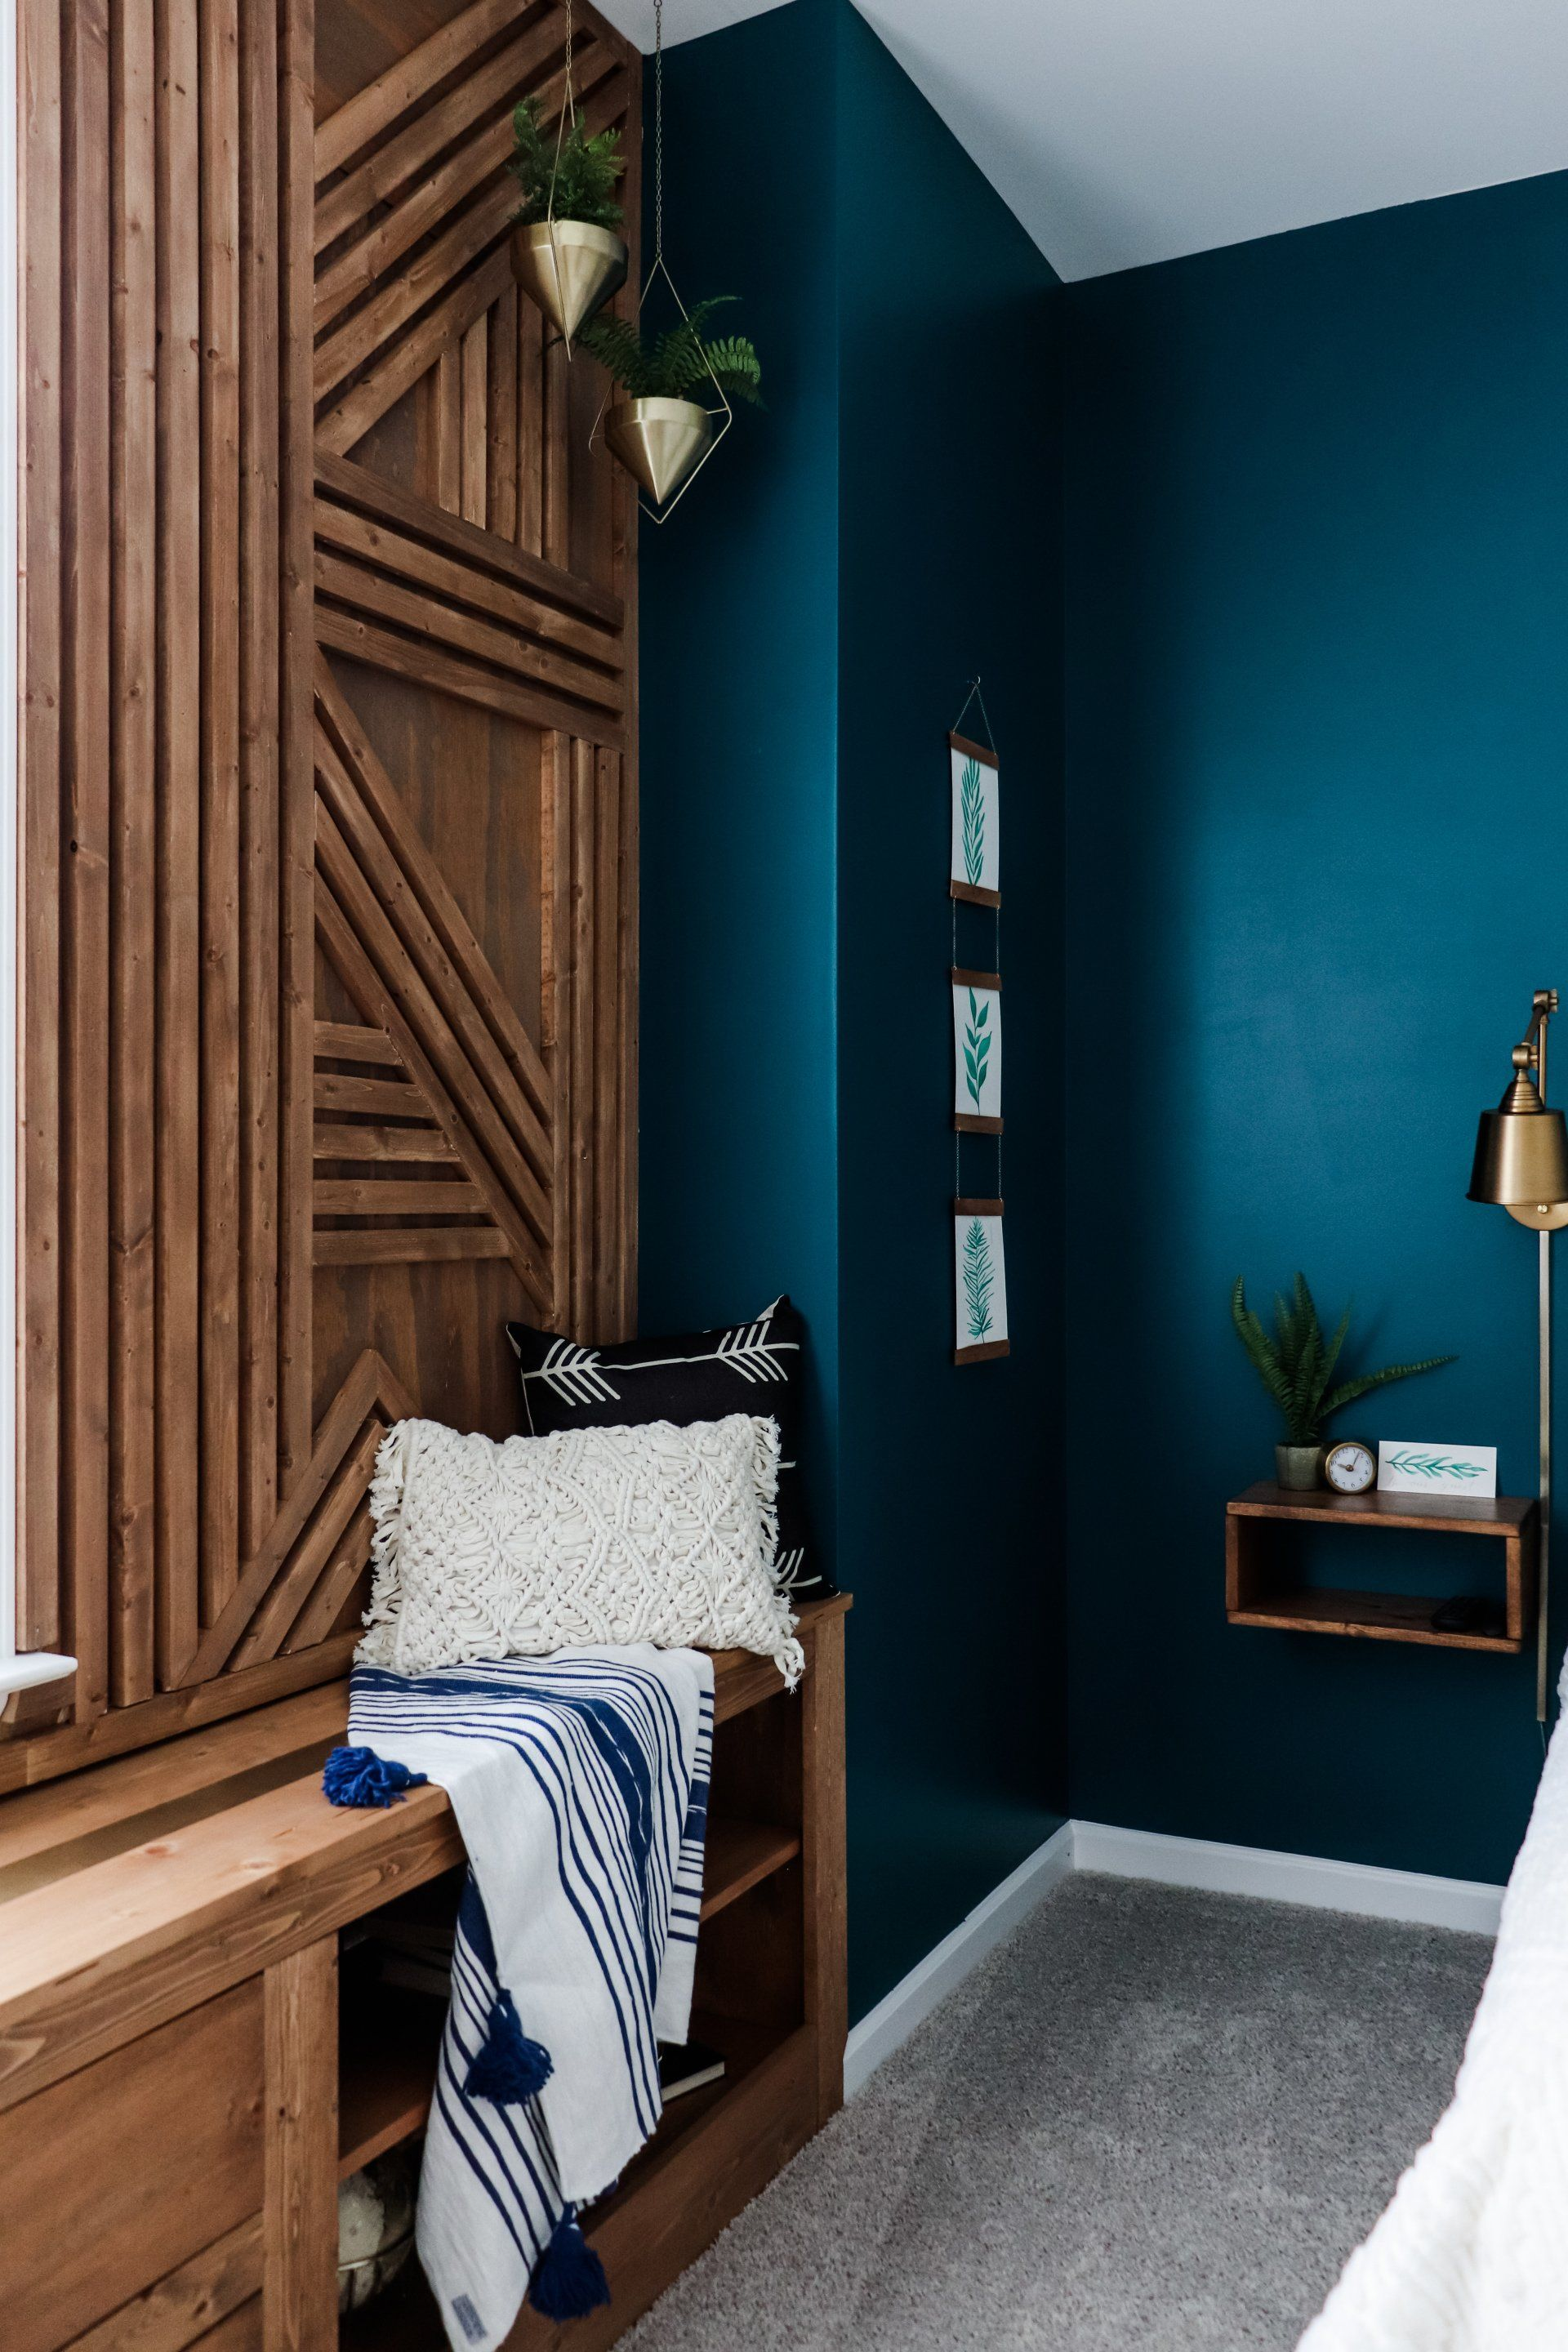 From classic board and batten to geometric accent walls utilizing unique materials, we rounded-up the 10 best accent wall ideas to spark your imagination.